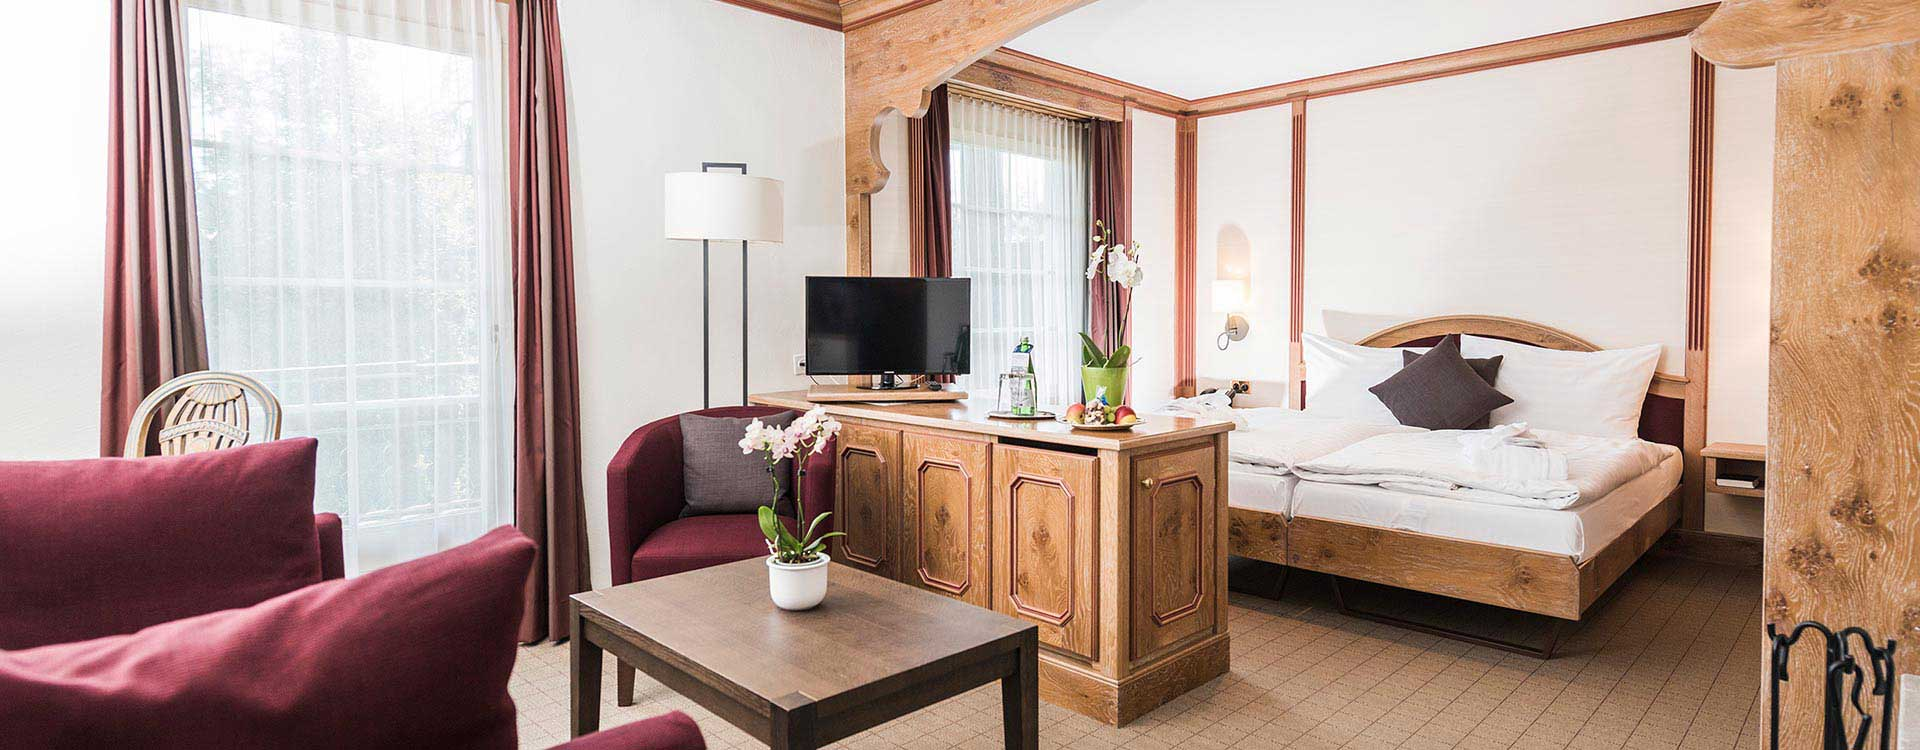 Wellnesshotel in Laax.